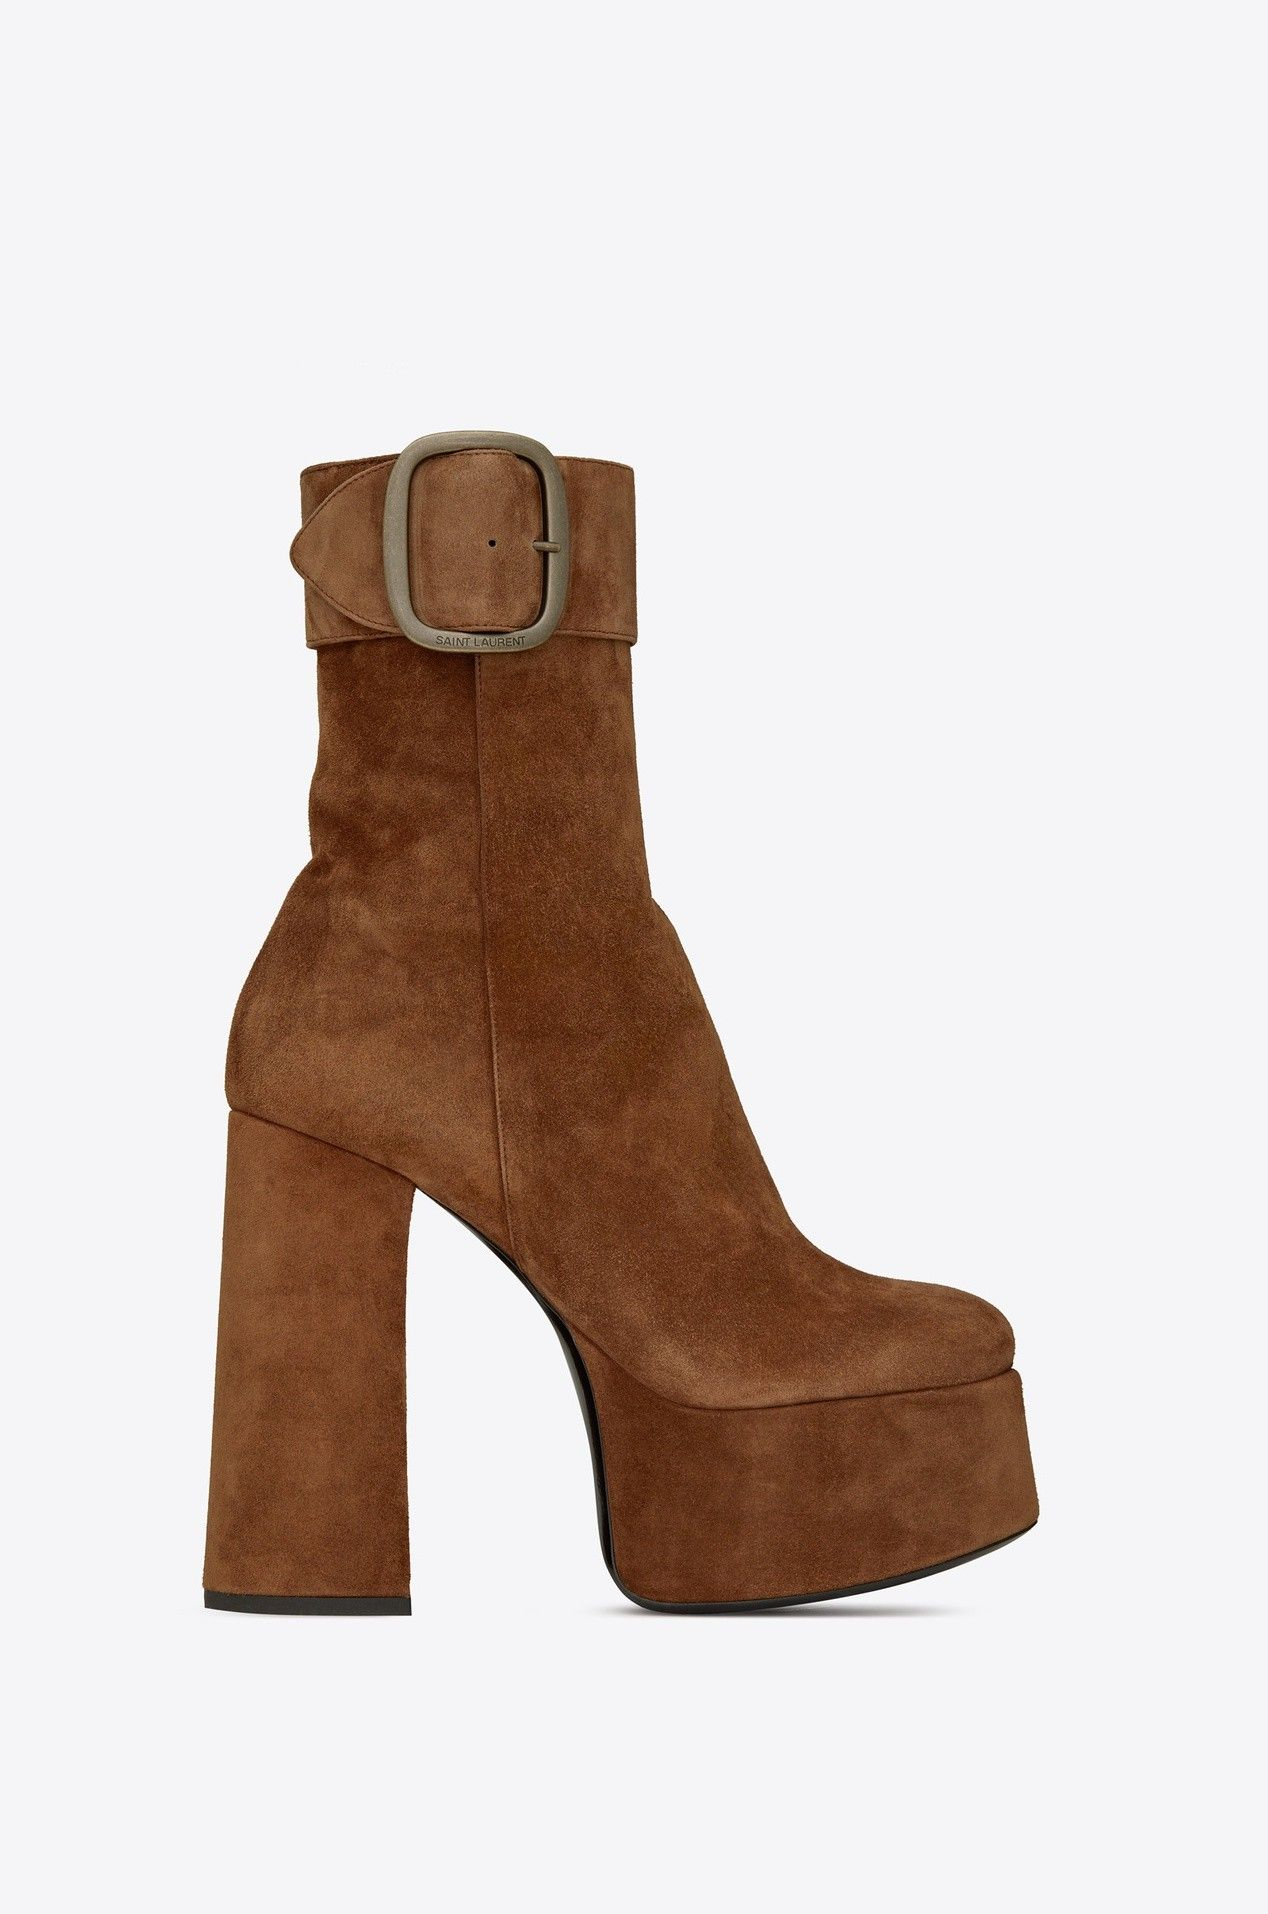 36301ab6c3a  ysl  saintlaurentshoes  booties  womenshoes  shoeobsession  womenboots